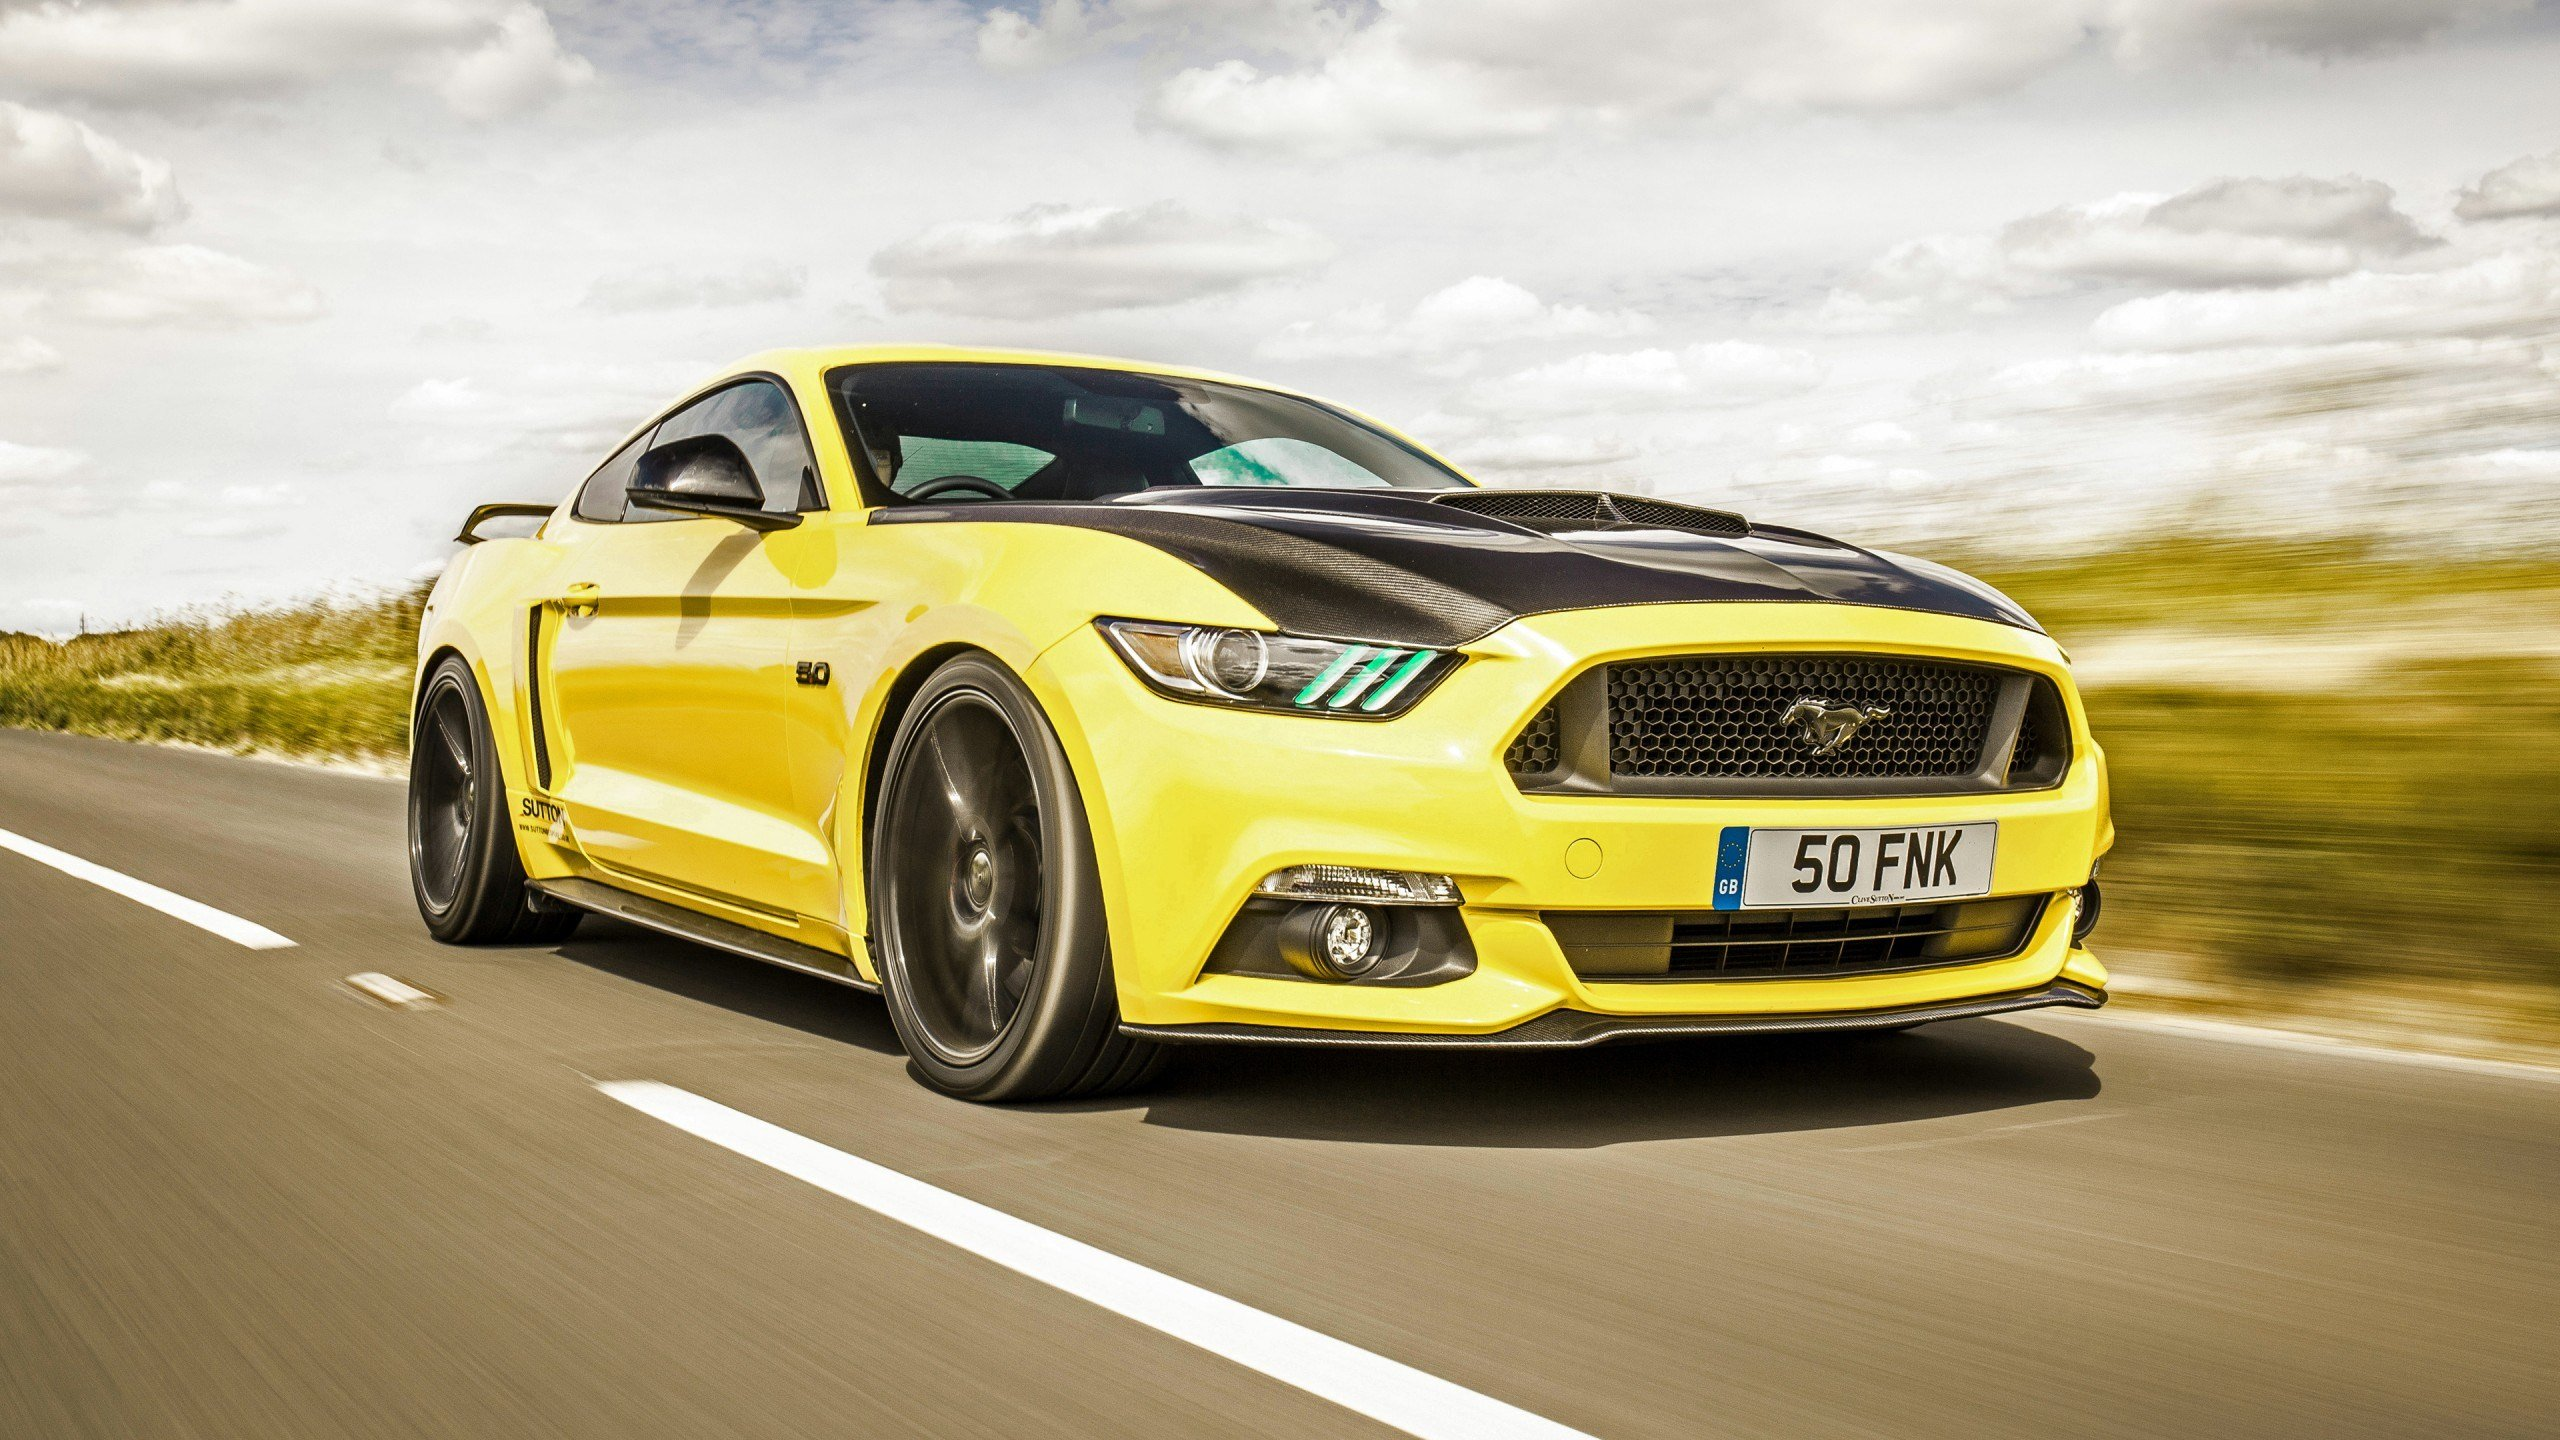 Latest Ford Mustang Gt 2016 Wallpaper Hd Car Wallpapers Id 6772 Free Download